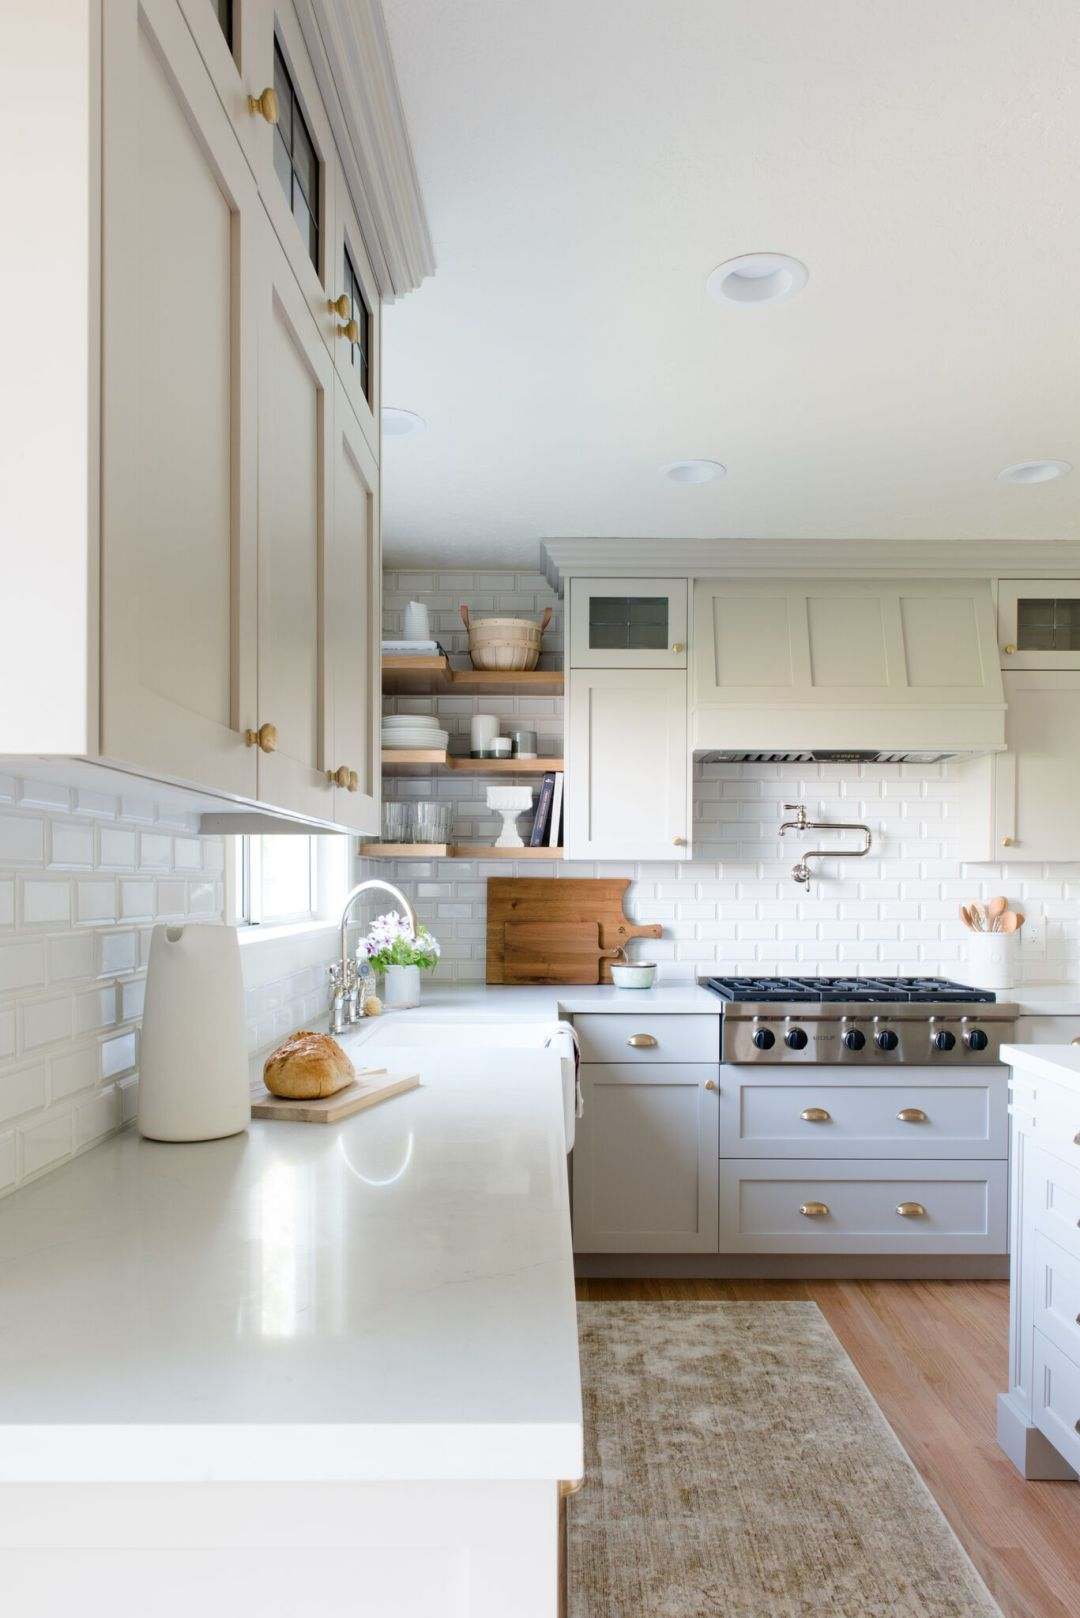 10x10 Bedroom Layout Ikea: My Favorite Paint Colors For Kitchen Cabinetry